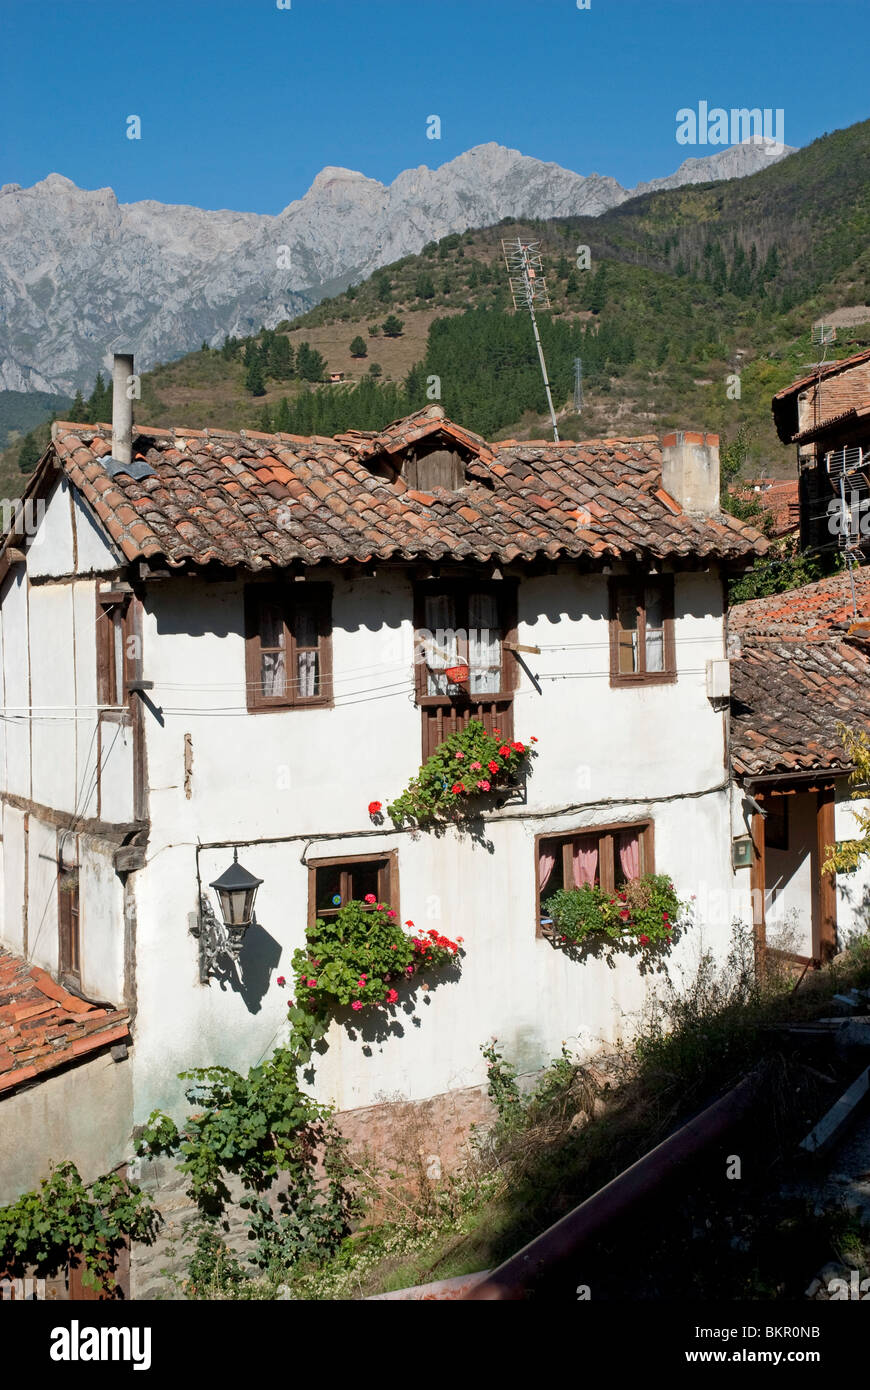 Traditional architecture in the town of Potes, Picos de Europa, Northern Spain - Stock Image